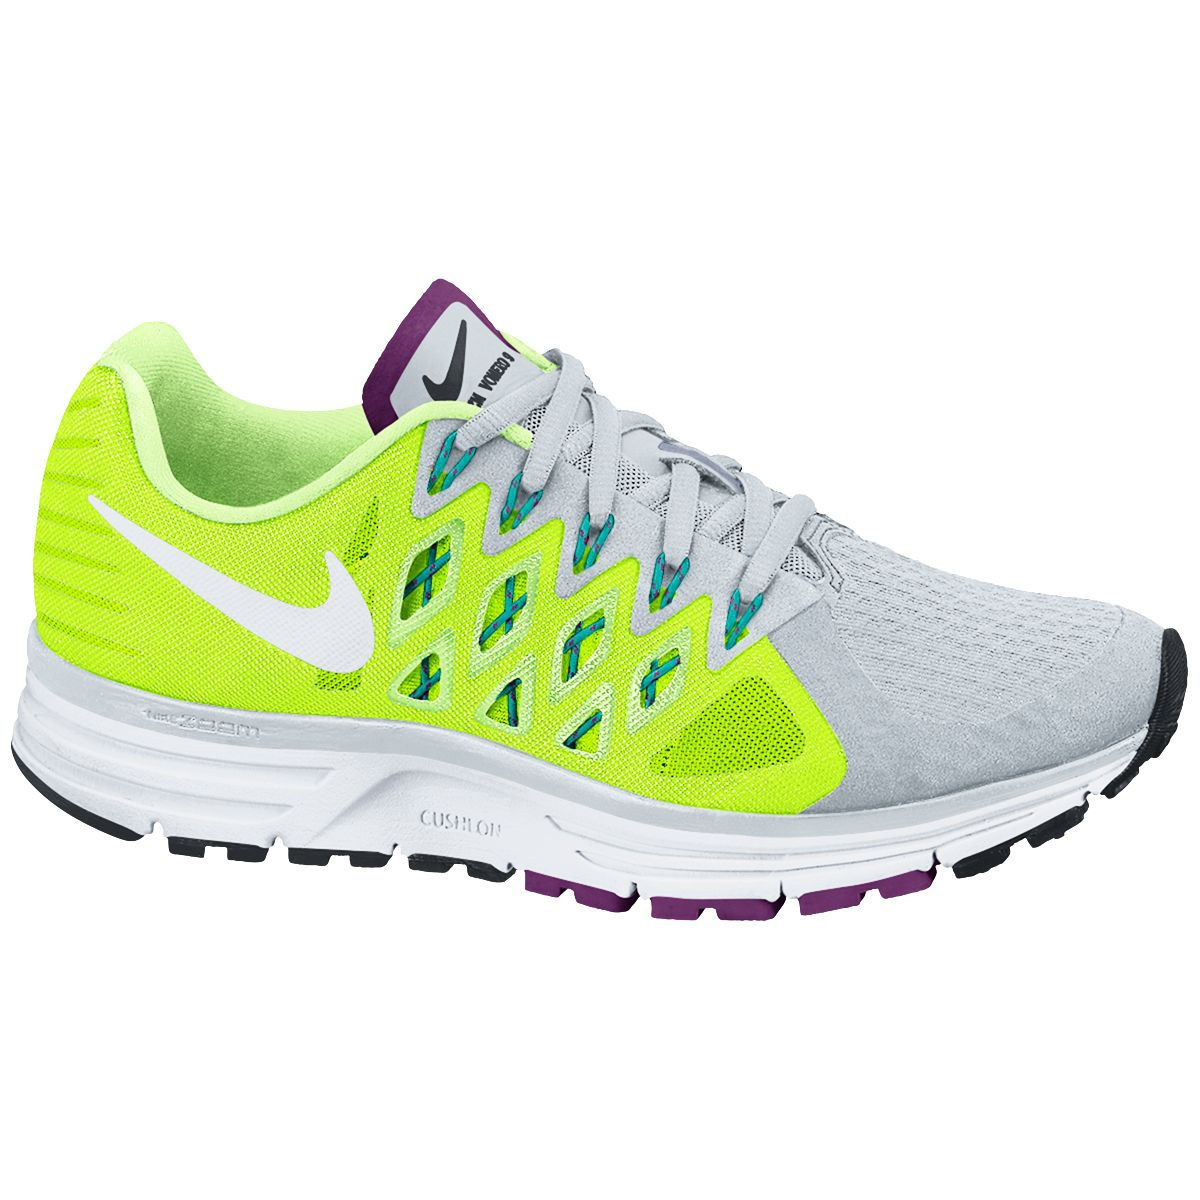 c8bbfb7d1647 Nike Zoom Vomero 9 Women s Running Shoes SP15 Womens Grey